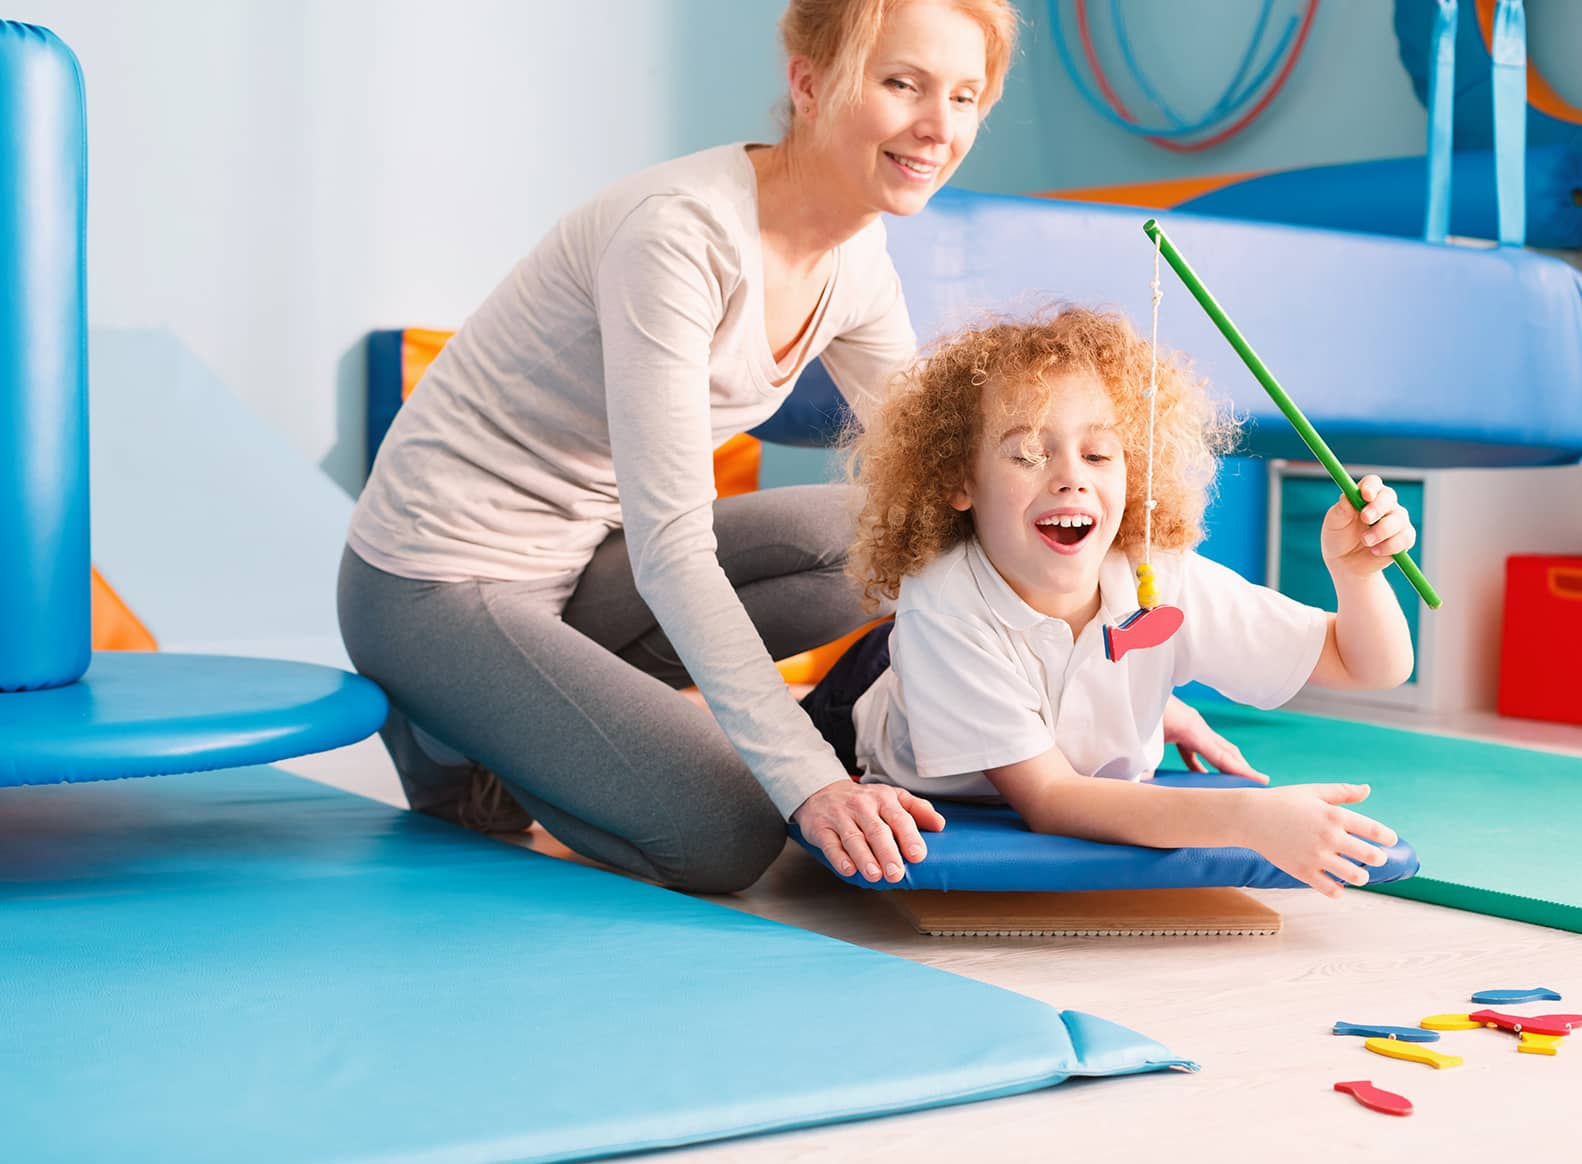 occupational therapist supporting child on a wobble board